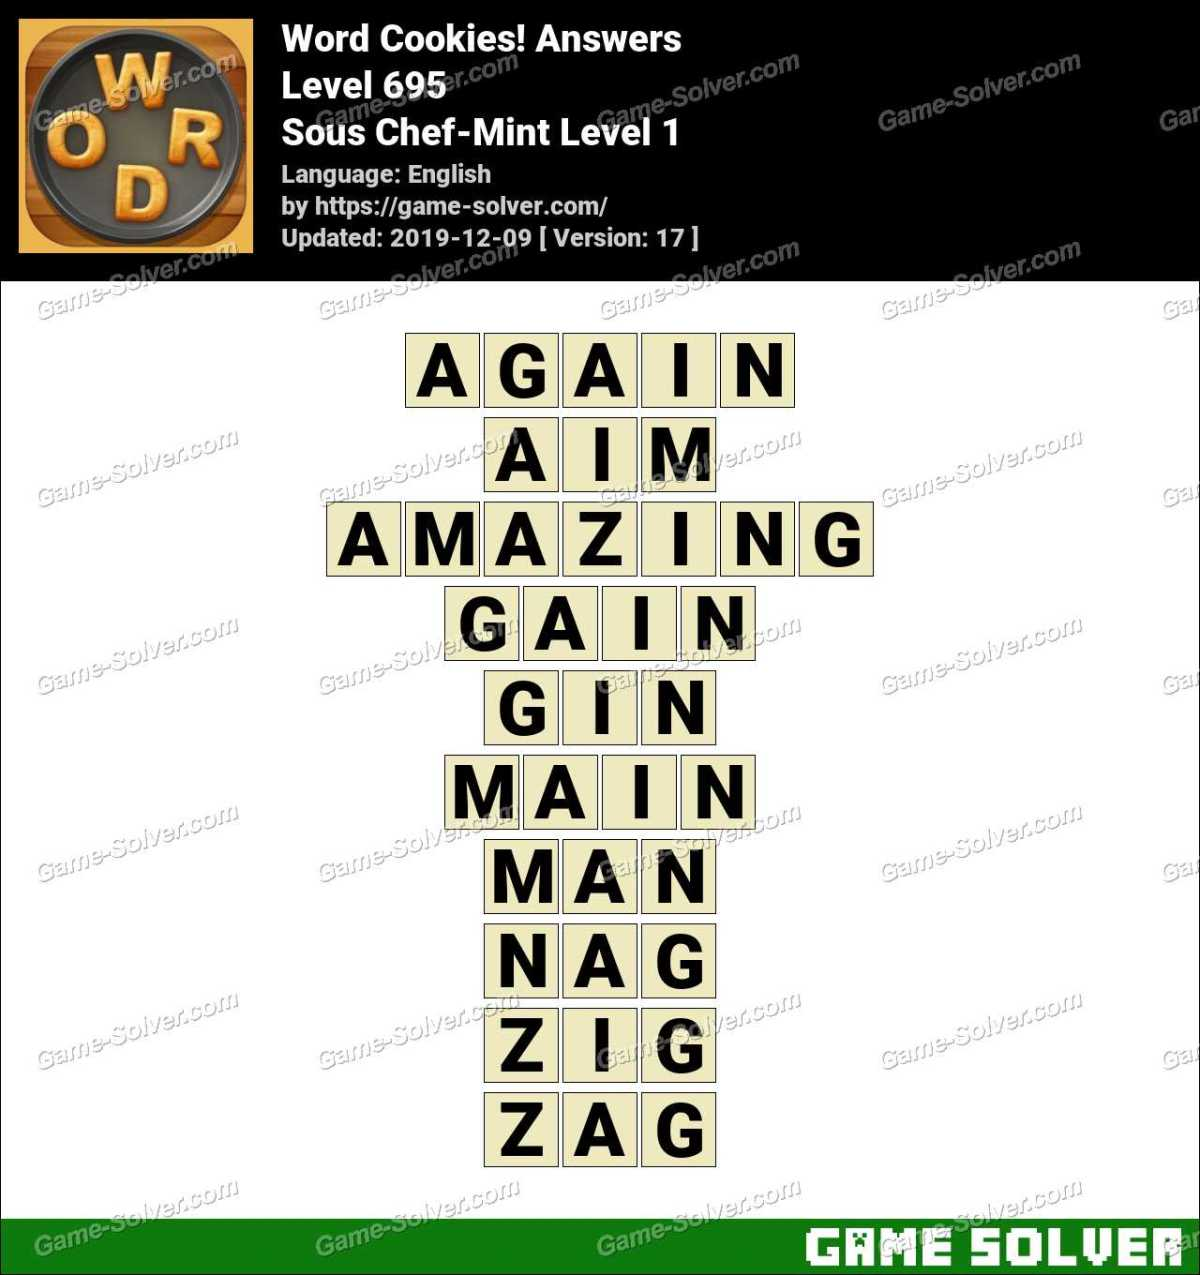 Word Cookies Sous Chef-Mint Level 1 Answers